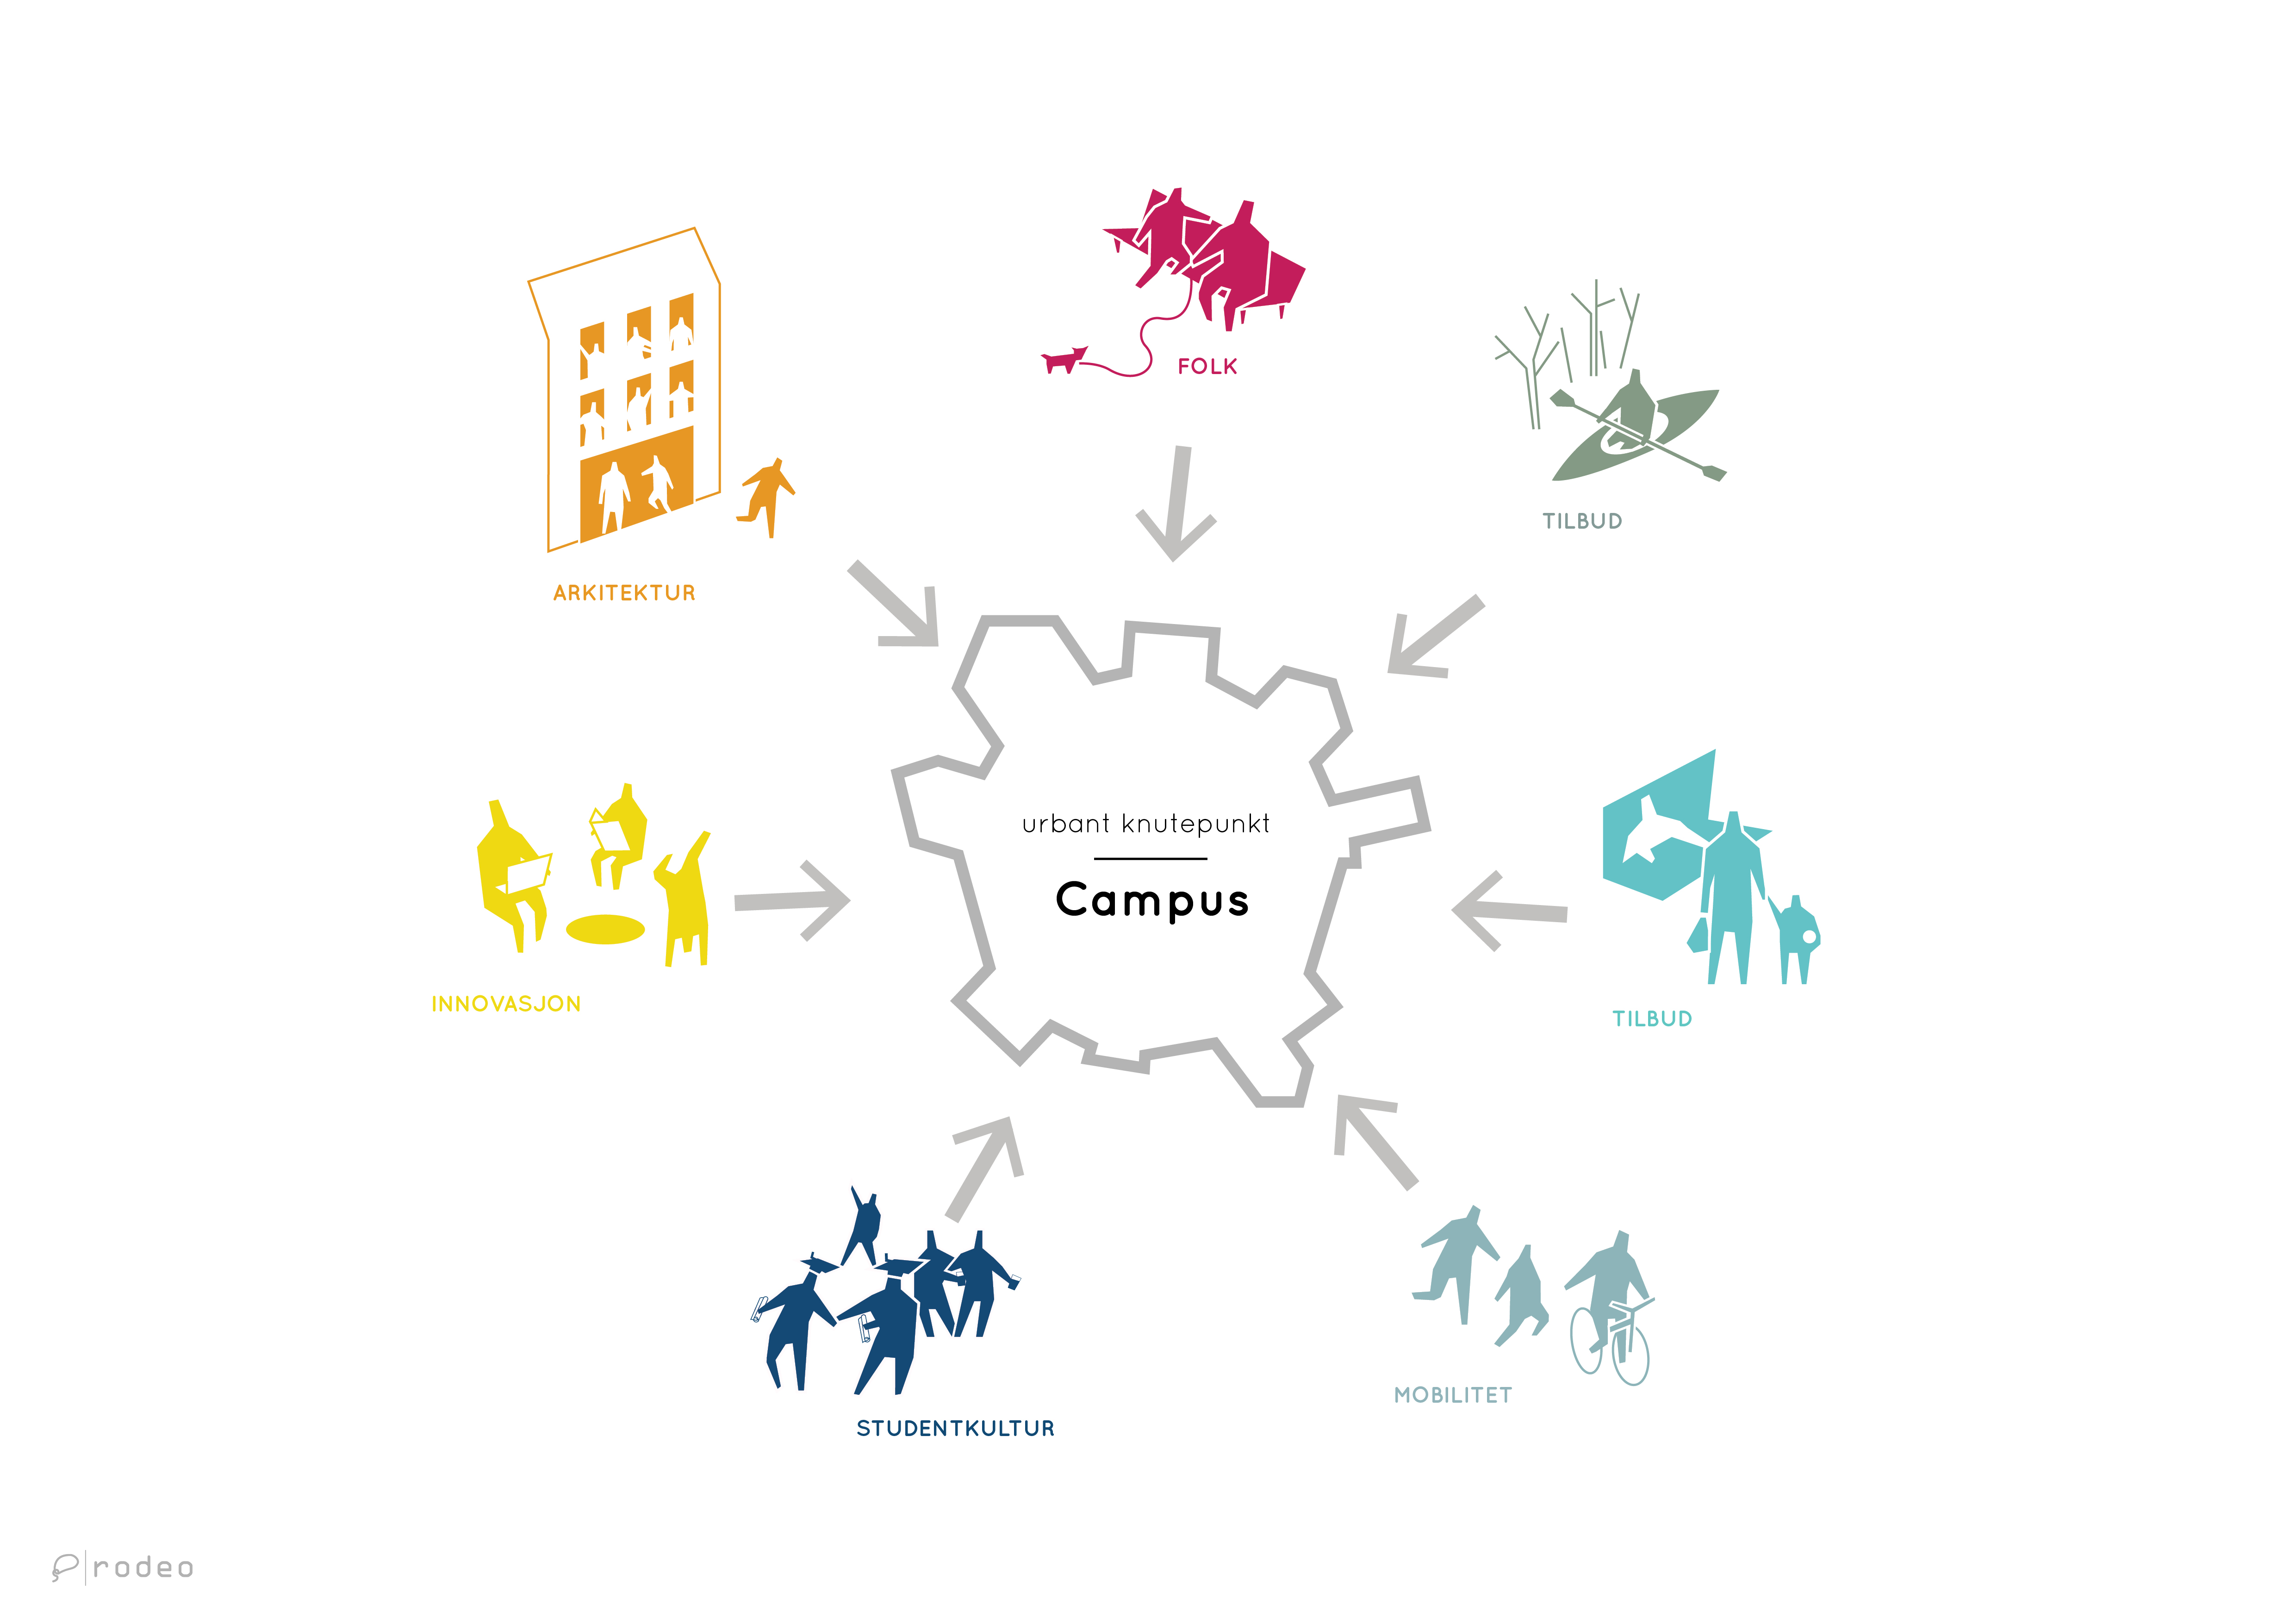 Illustration of campus in Ålesund as a power center and a hub. Rodeo architects